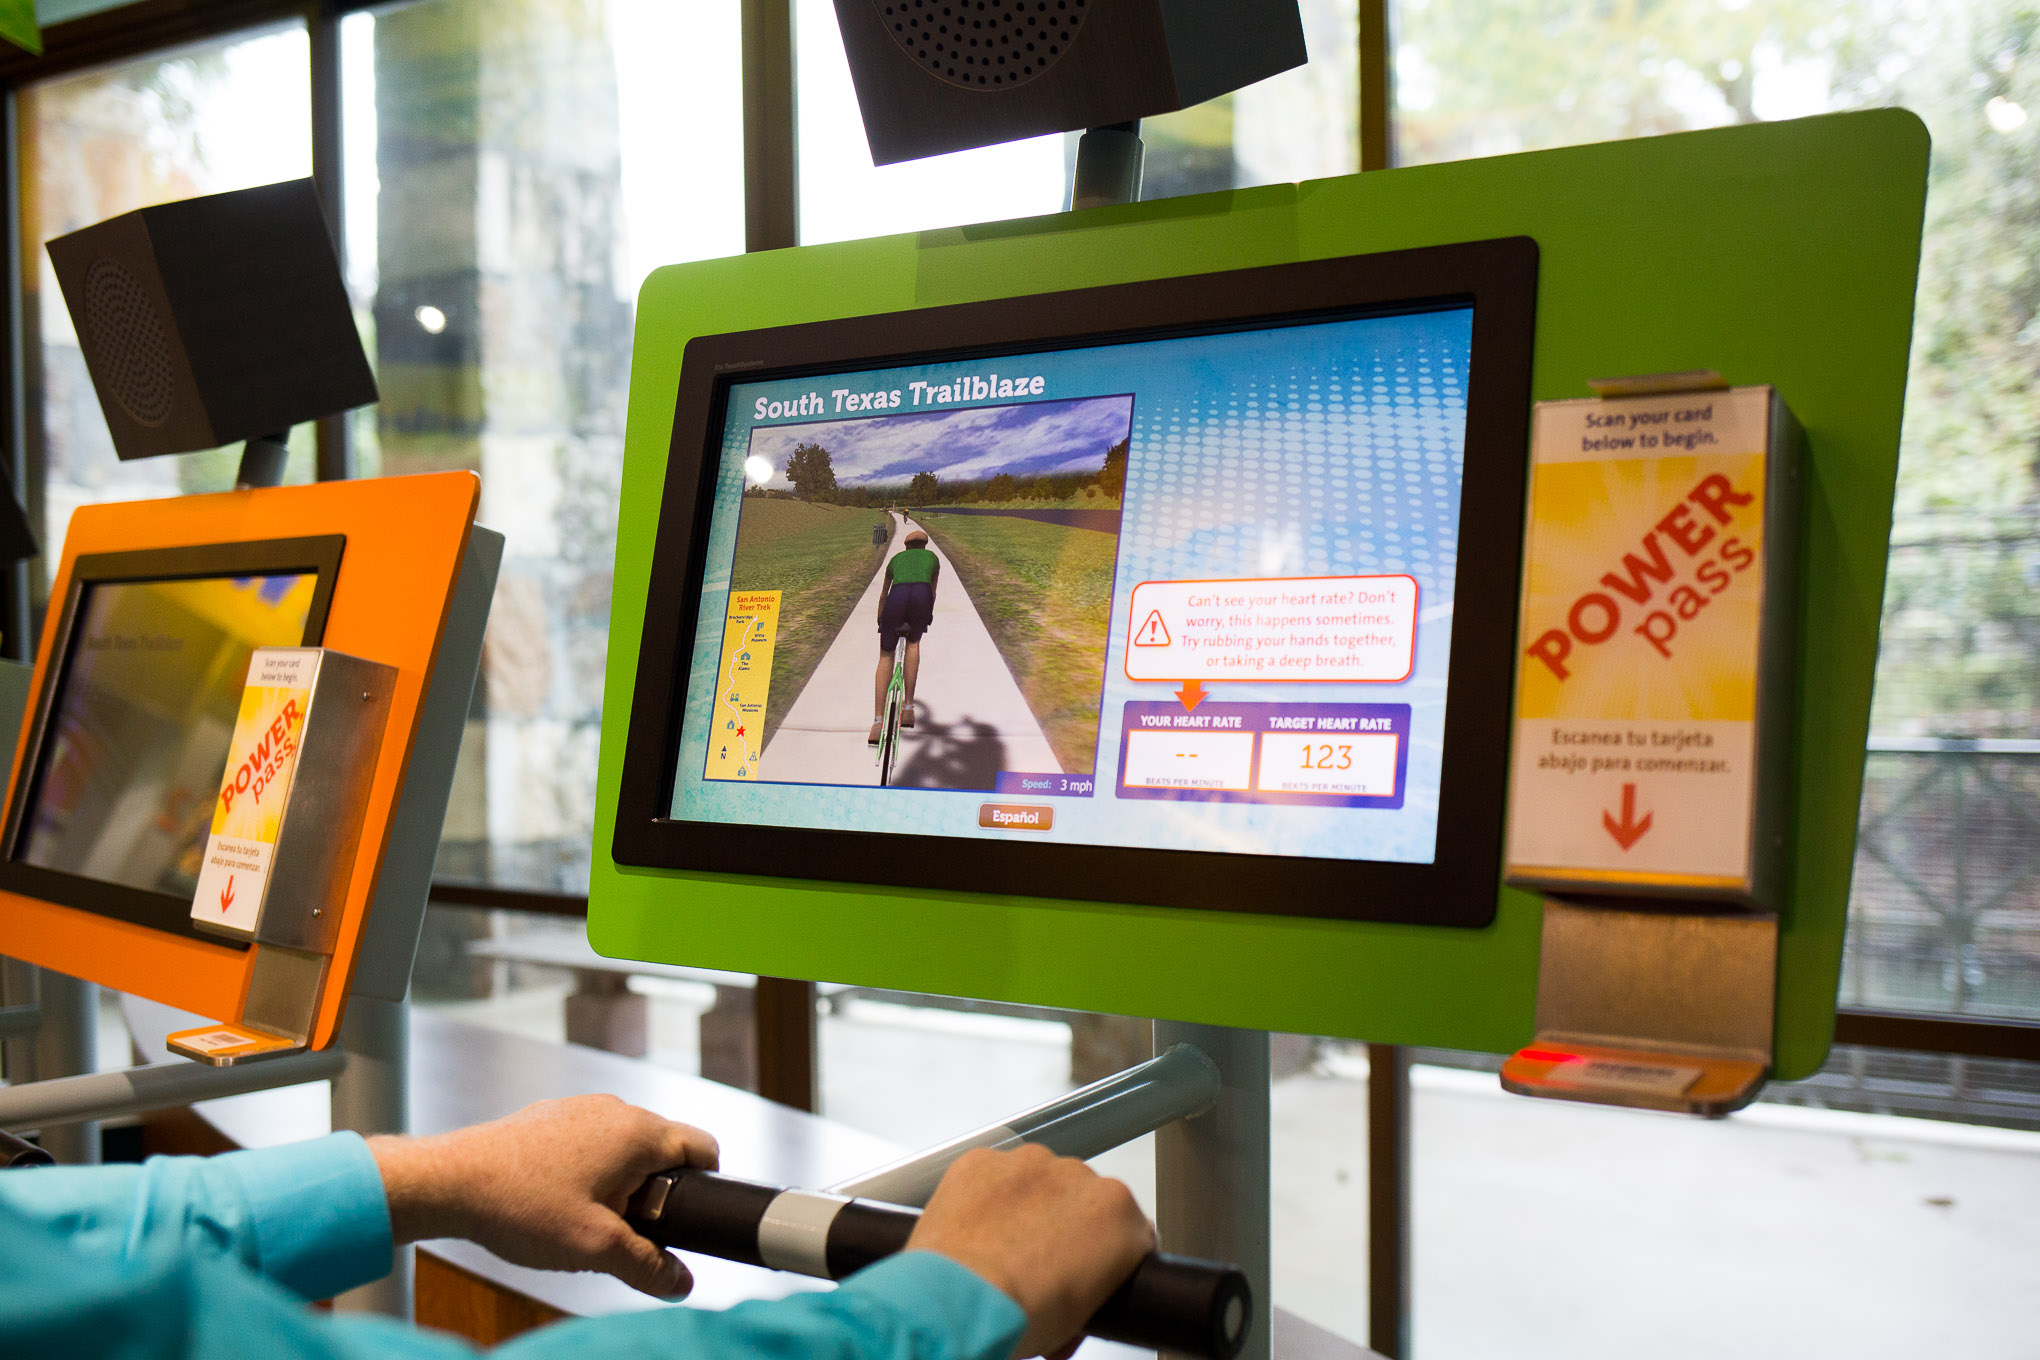 A GoPro was used to film the bike trail along the Mission Reach to localize the exhibit.